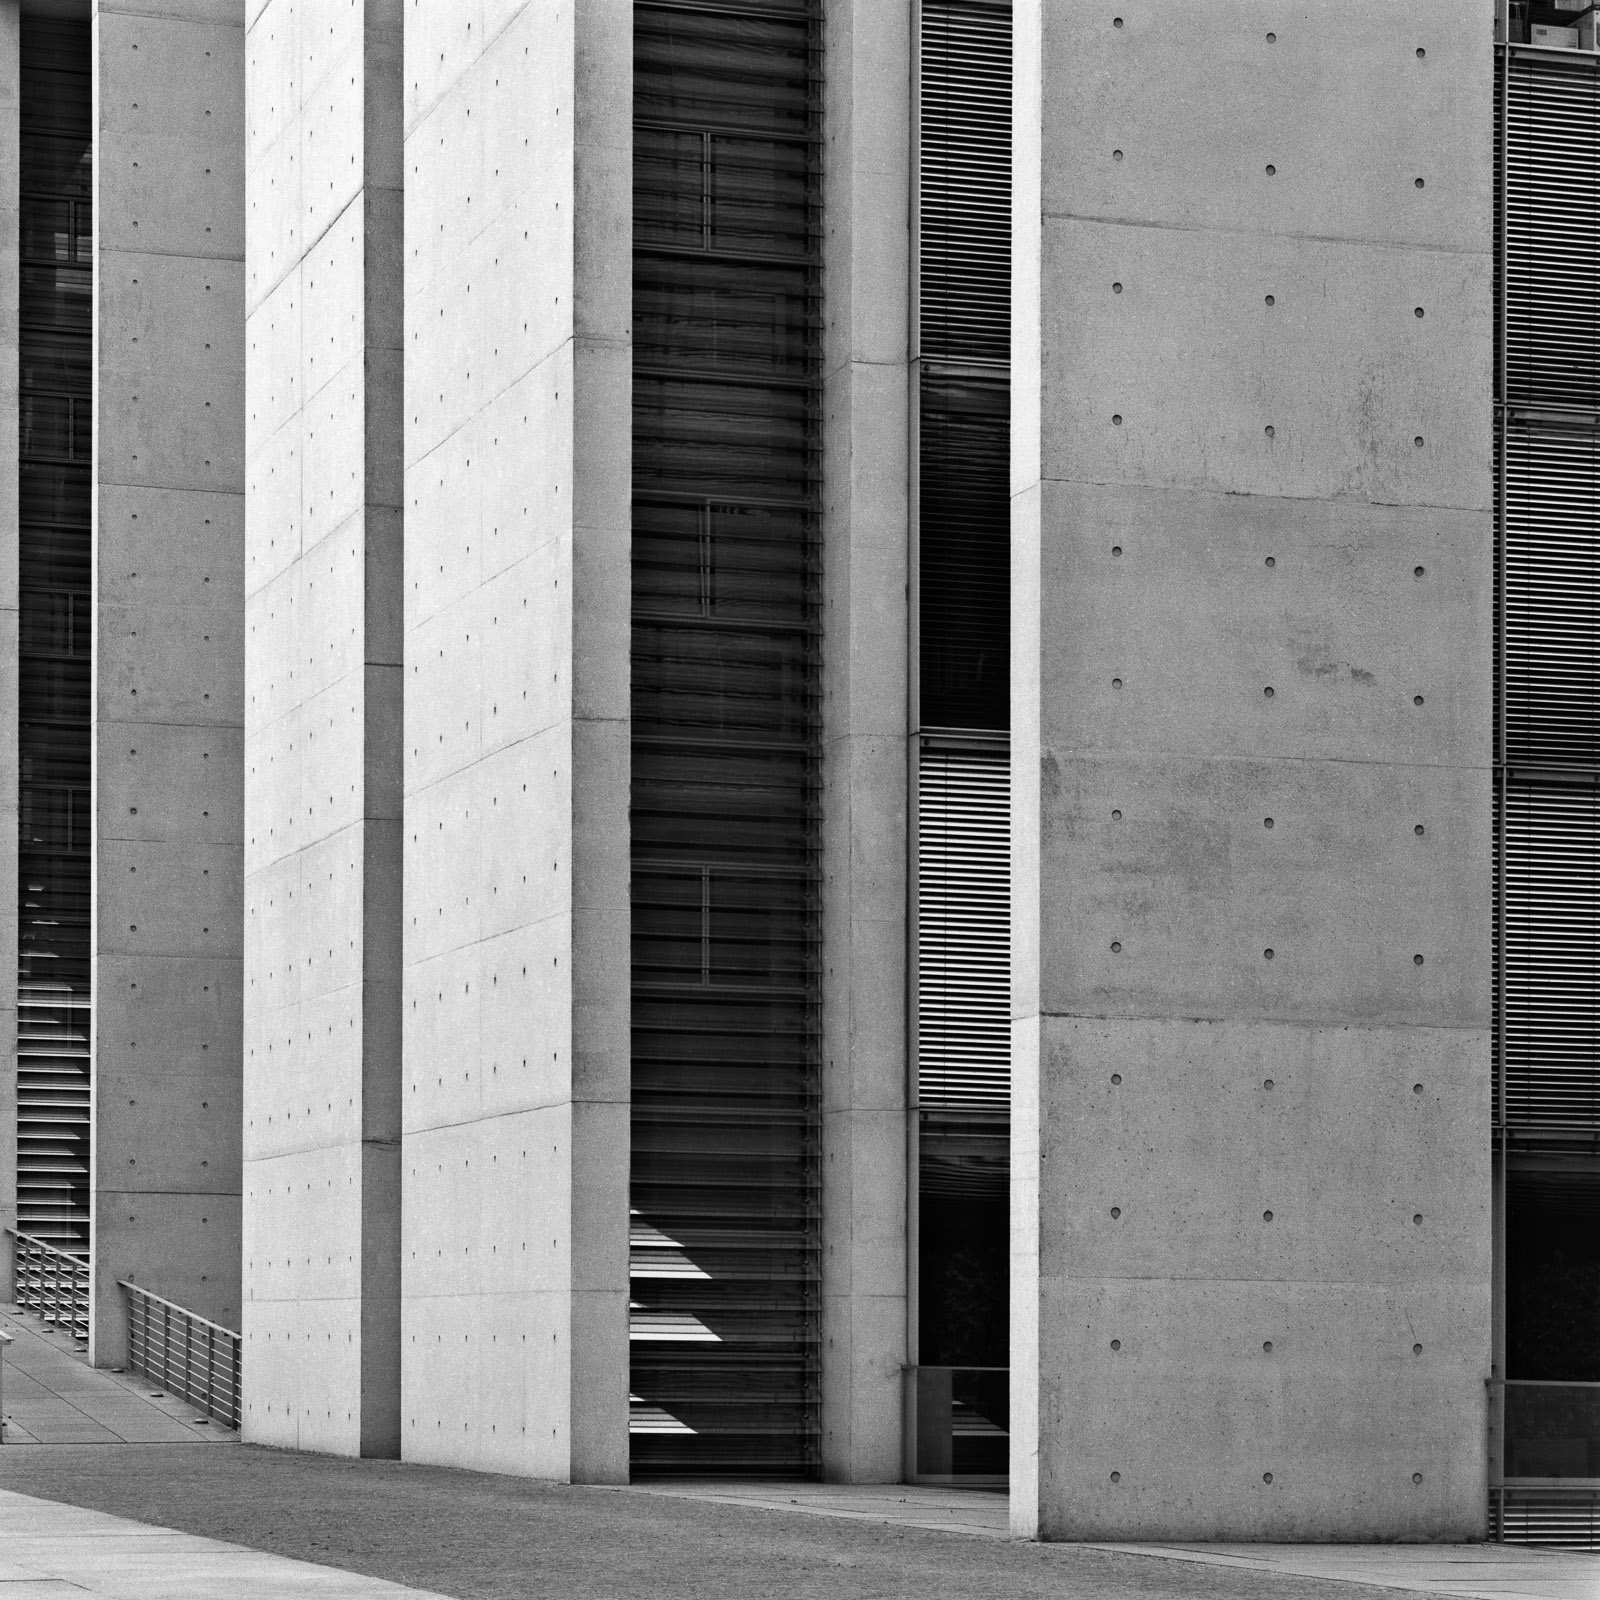 Government building, Berlin